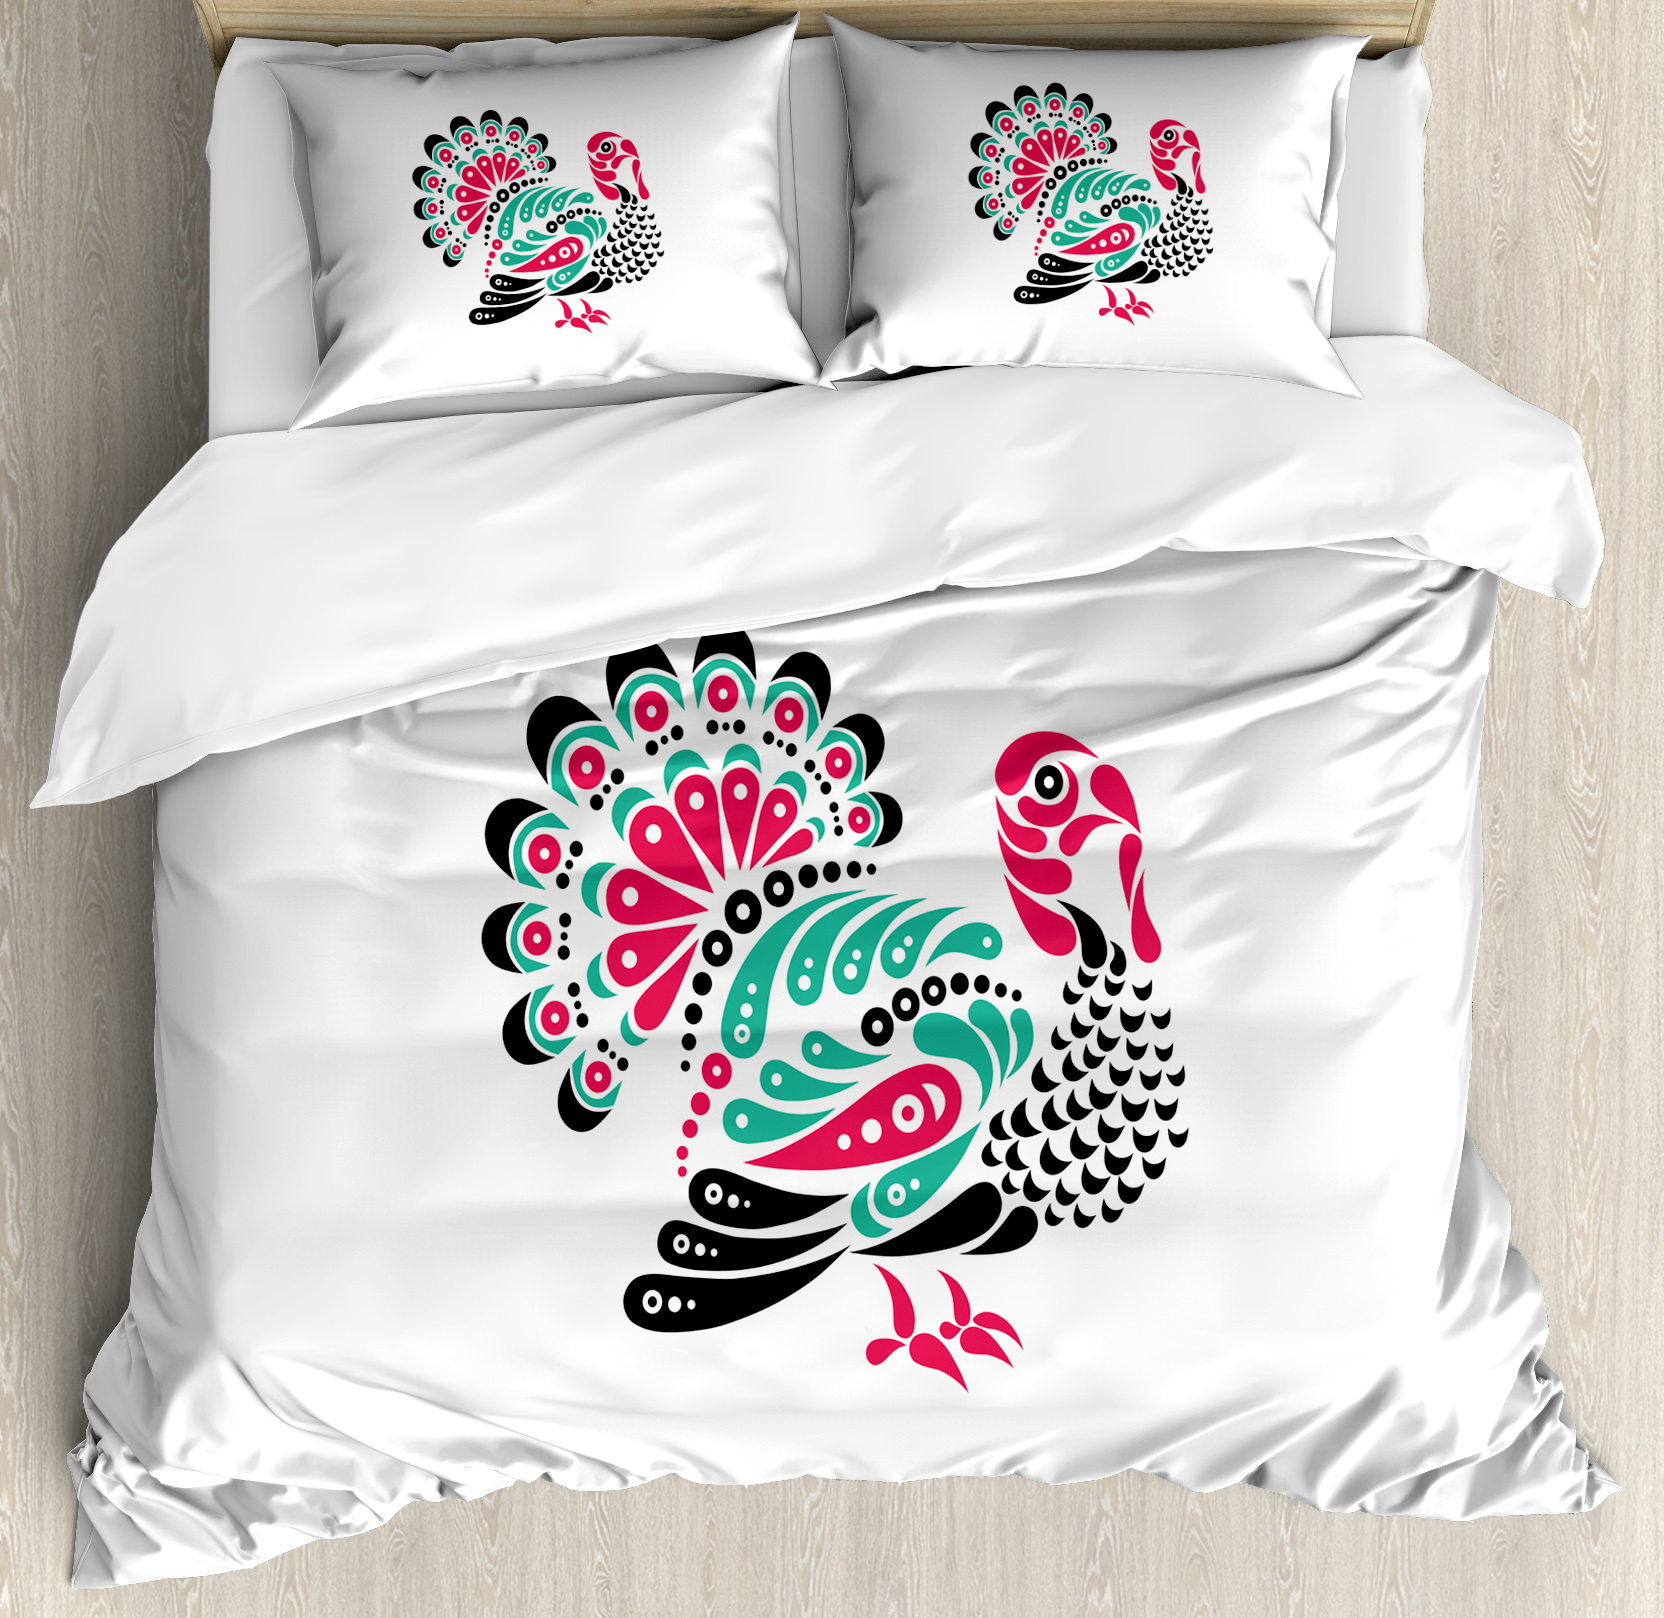 Turkey Queen Size Duvet Cover Set, Thanksgiving Themed Animal Design with Paisleys Ornamental Elements, Decorative 3 Piece Bedding Set with 2 Pillow Shams, Dark Coral Seafoam Black, by Ambesonne